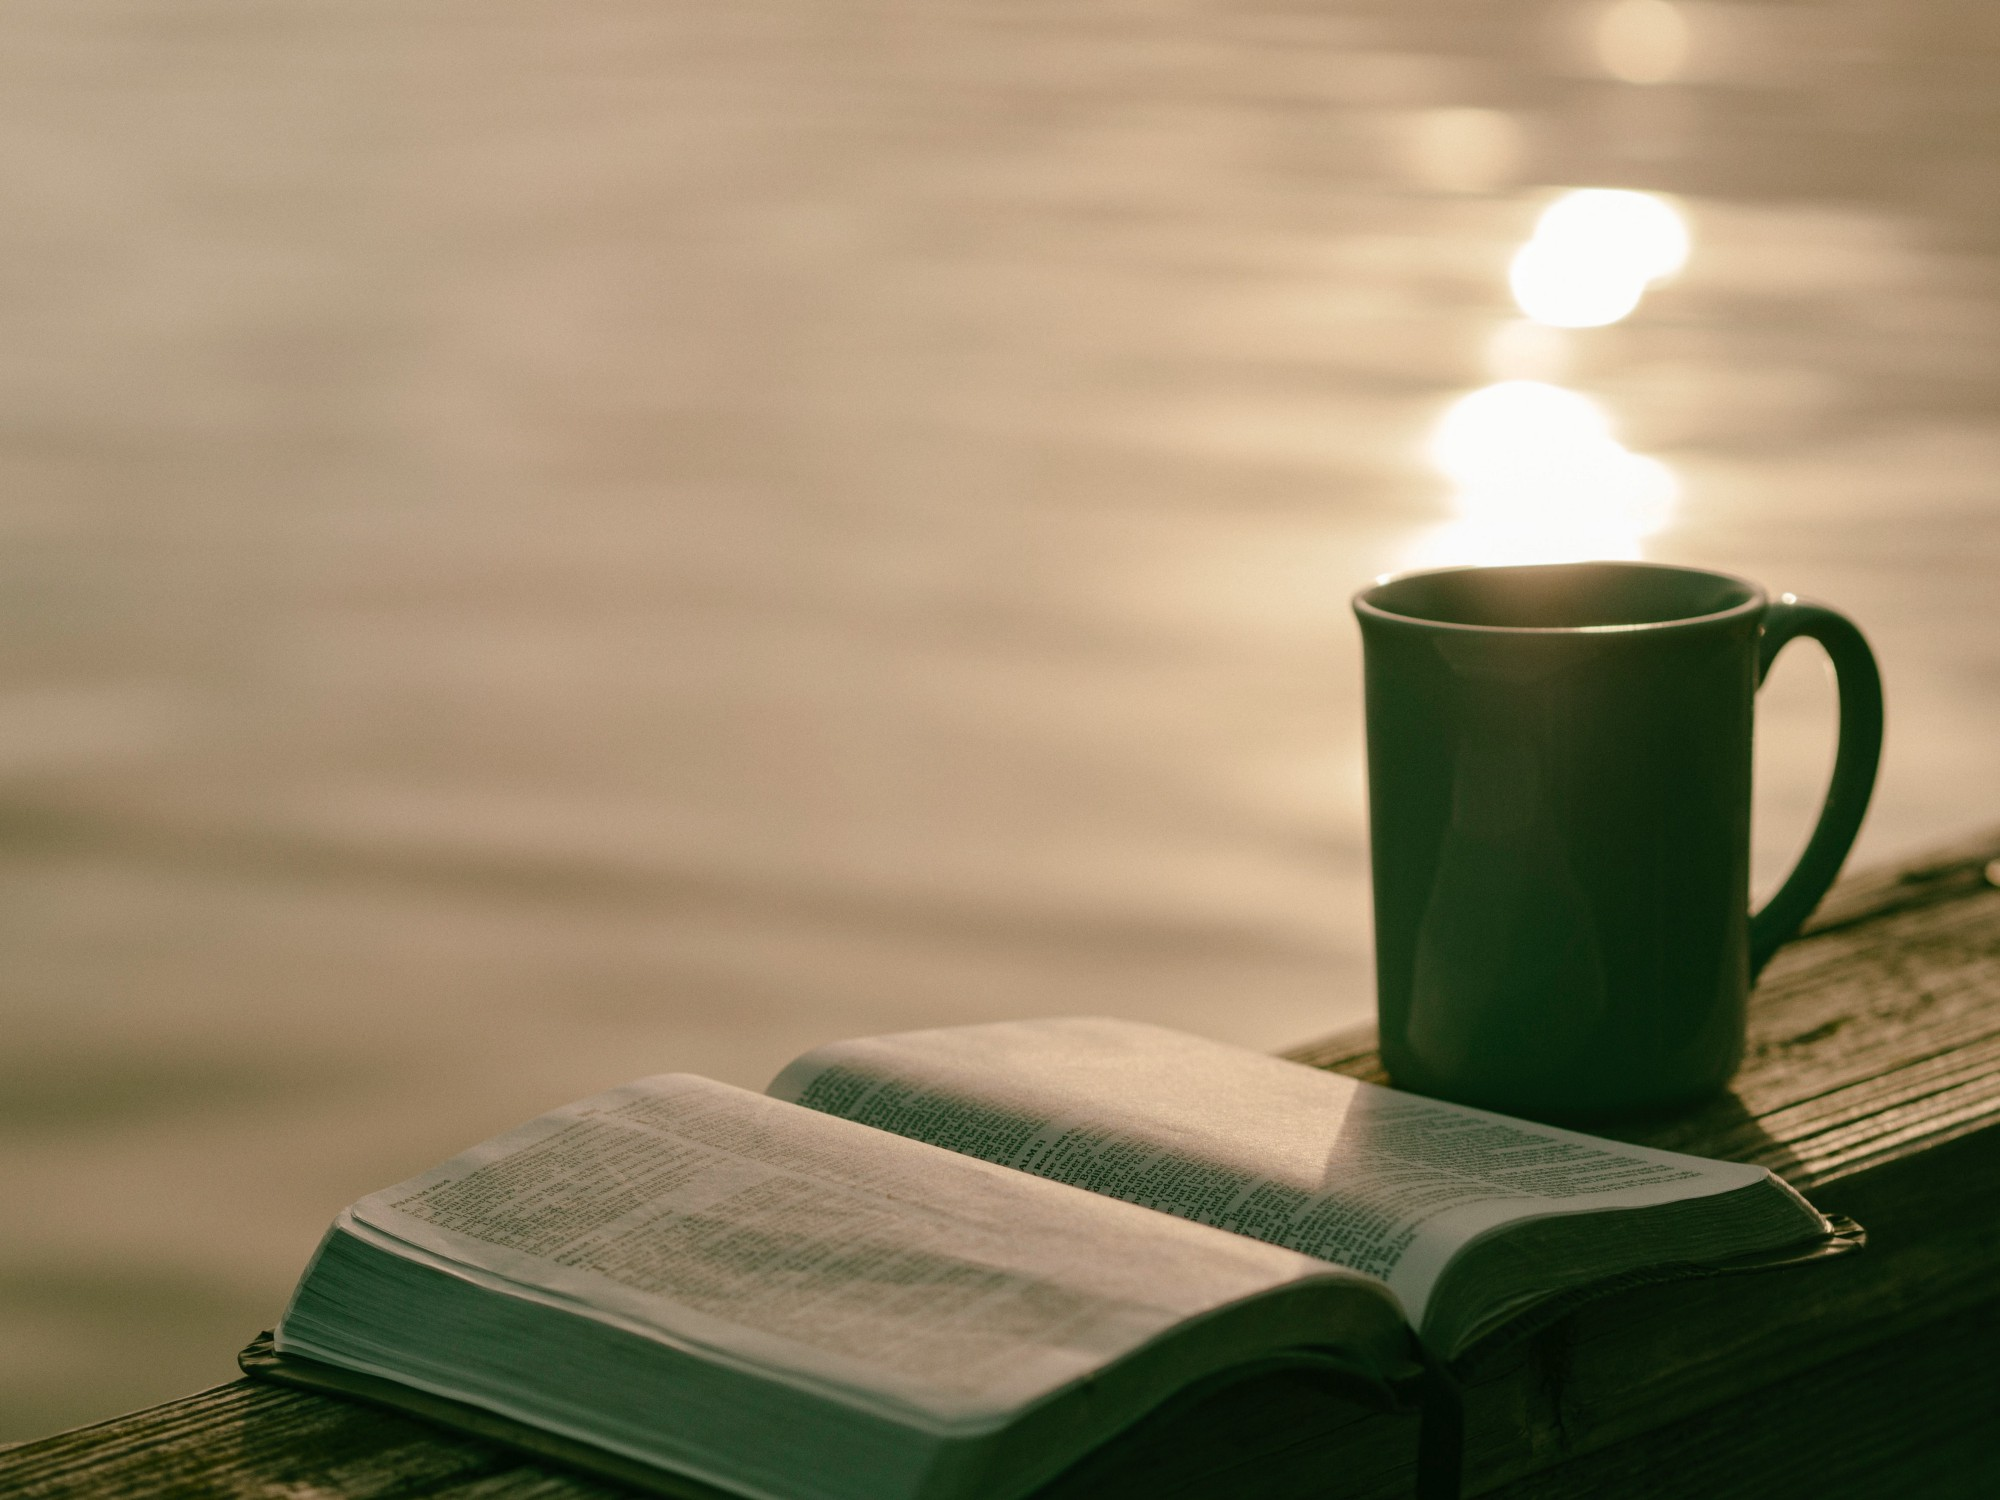 Open book and green mug in evening sun with water in the background.